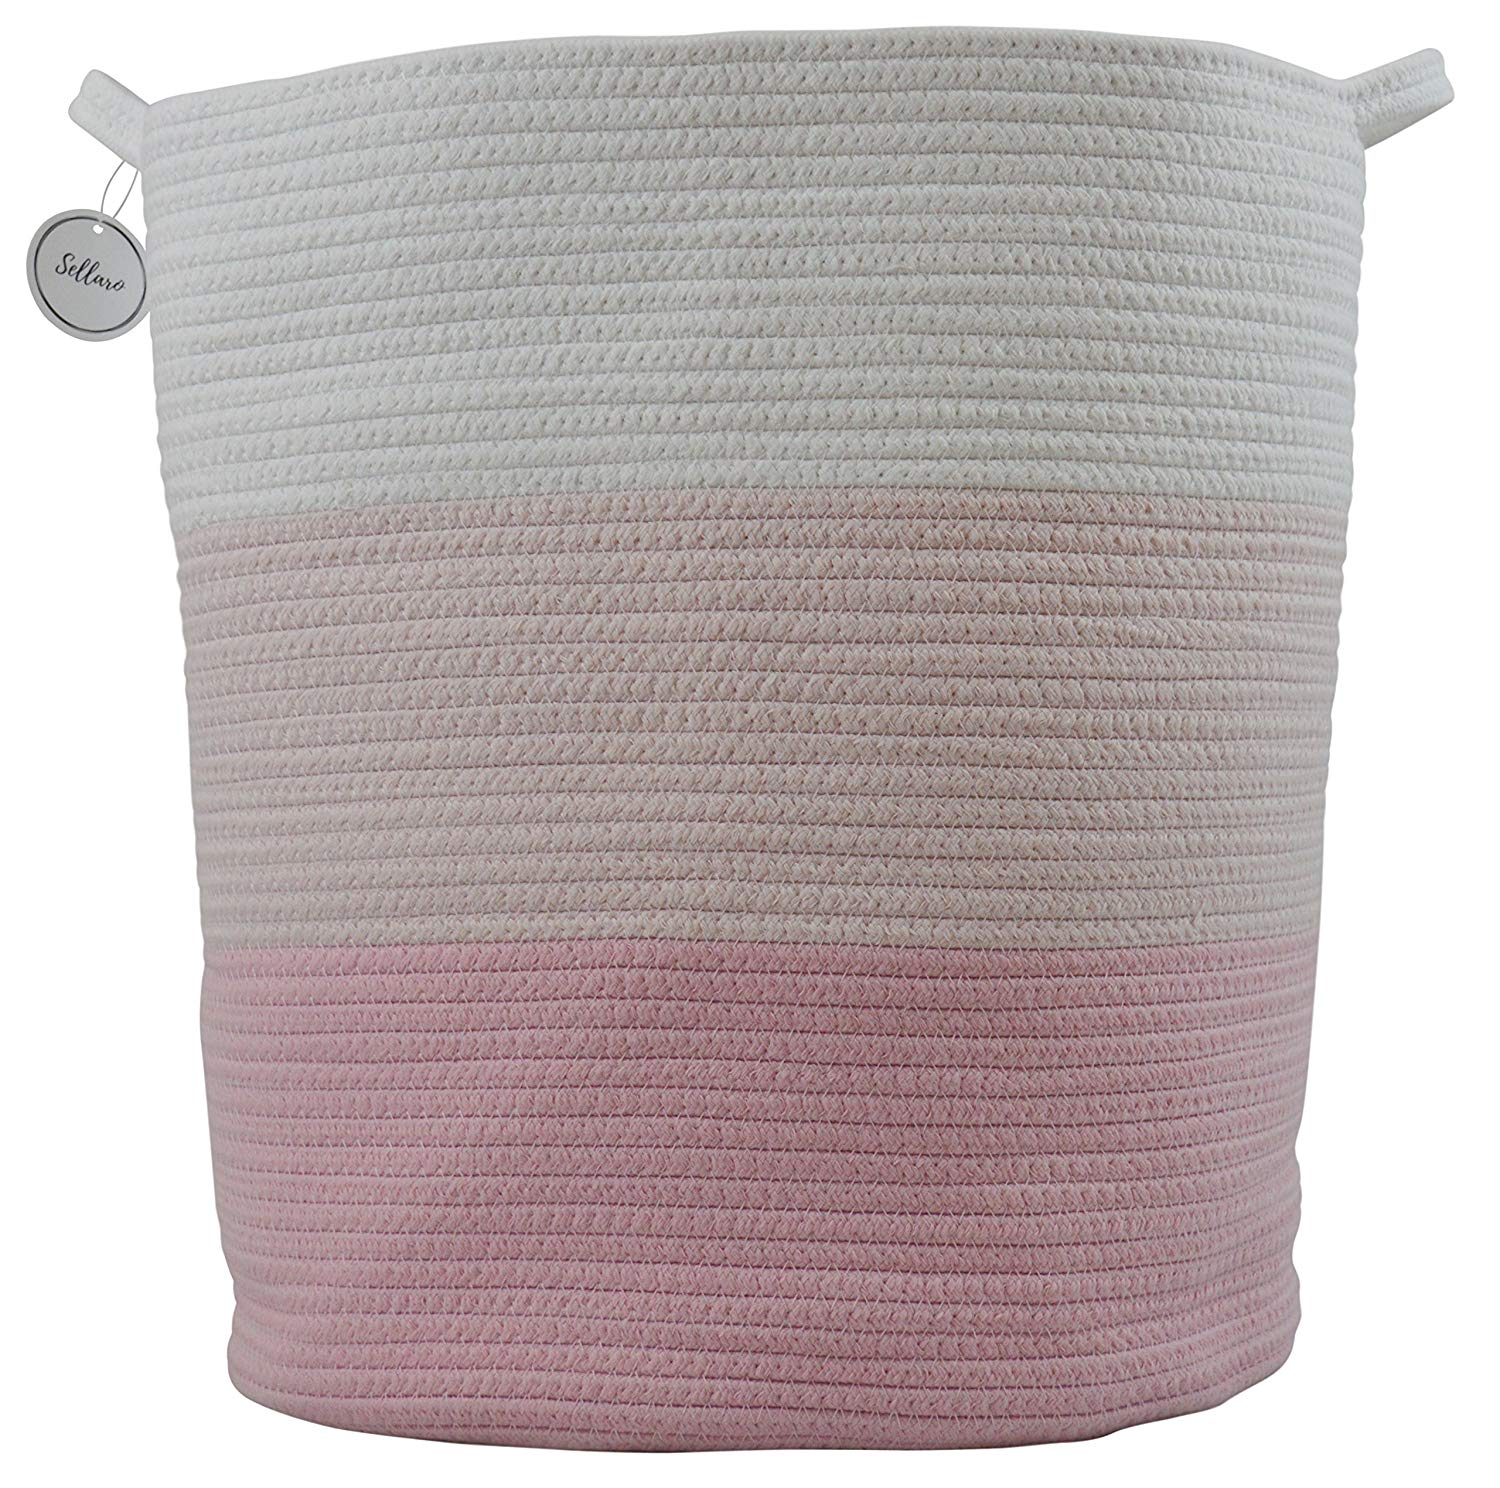 Extra Large Cotton Rope Basket Baby Nursery Hamper Décor And Storage Toy